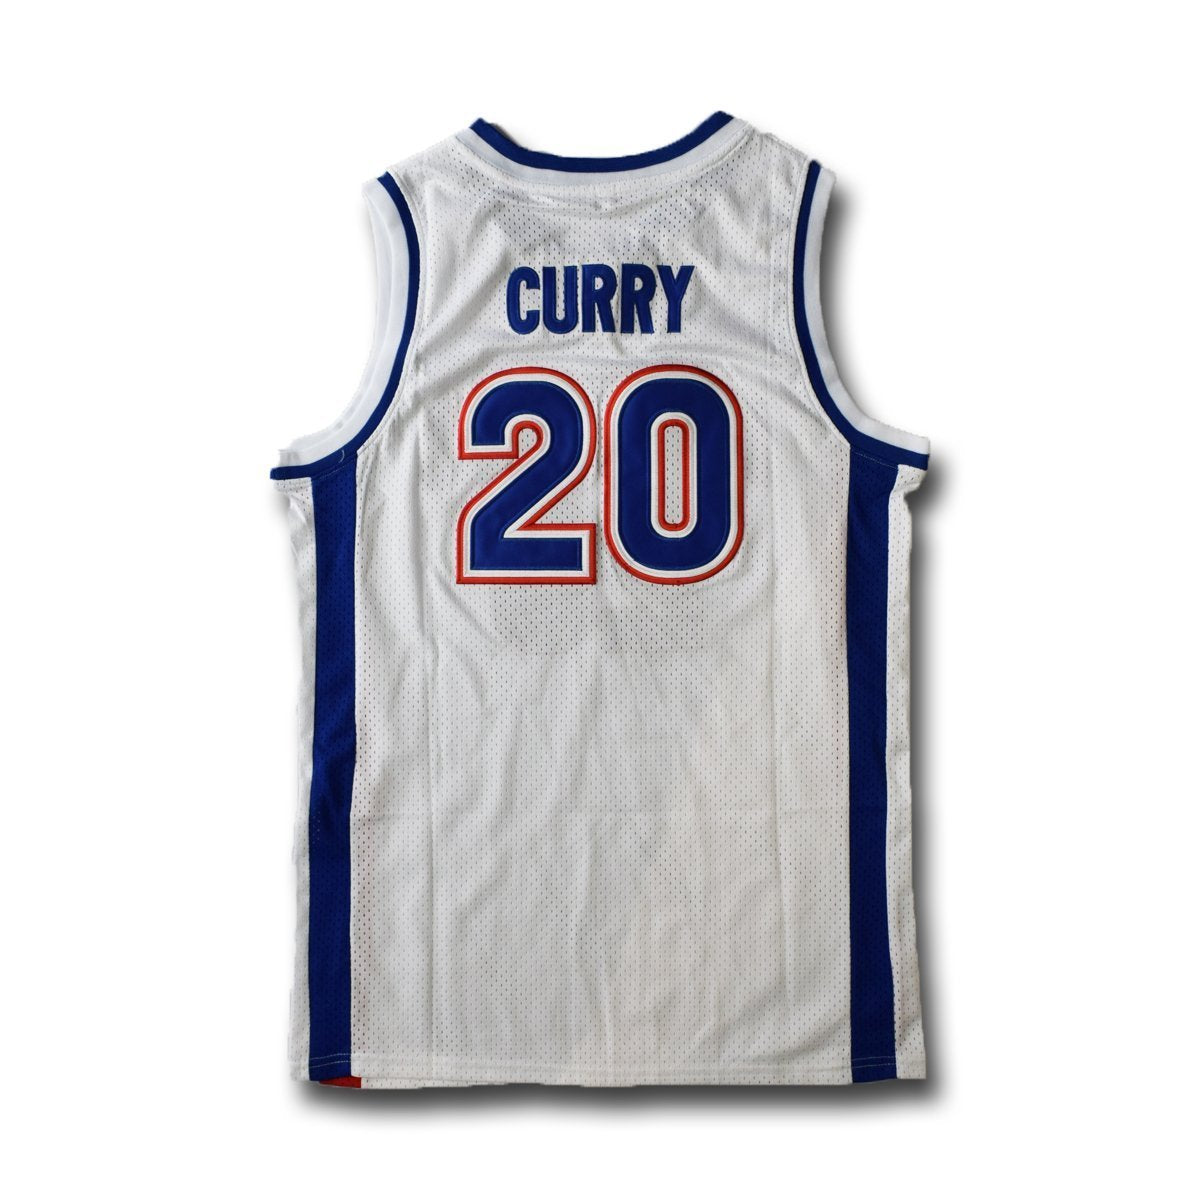 STEPHEN CURRY #20 CHARLOTTE CHRISTIAN HIGH SCHOOL JERSEY